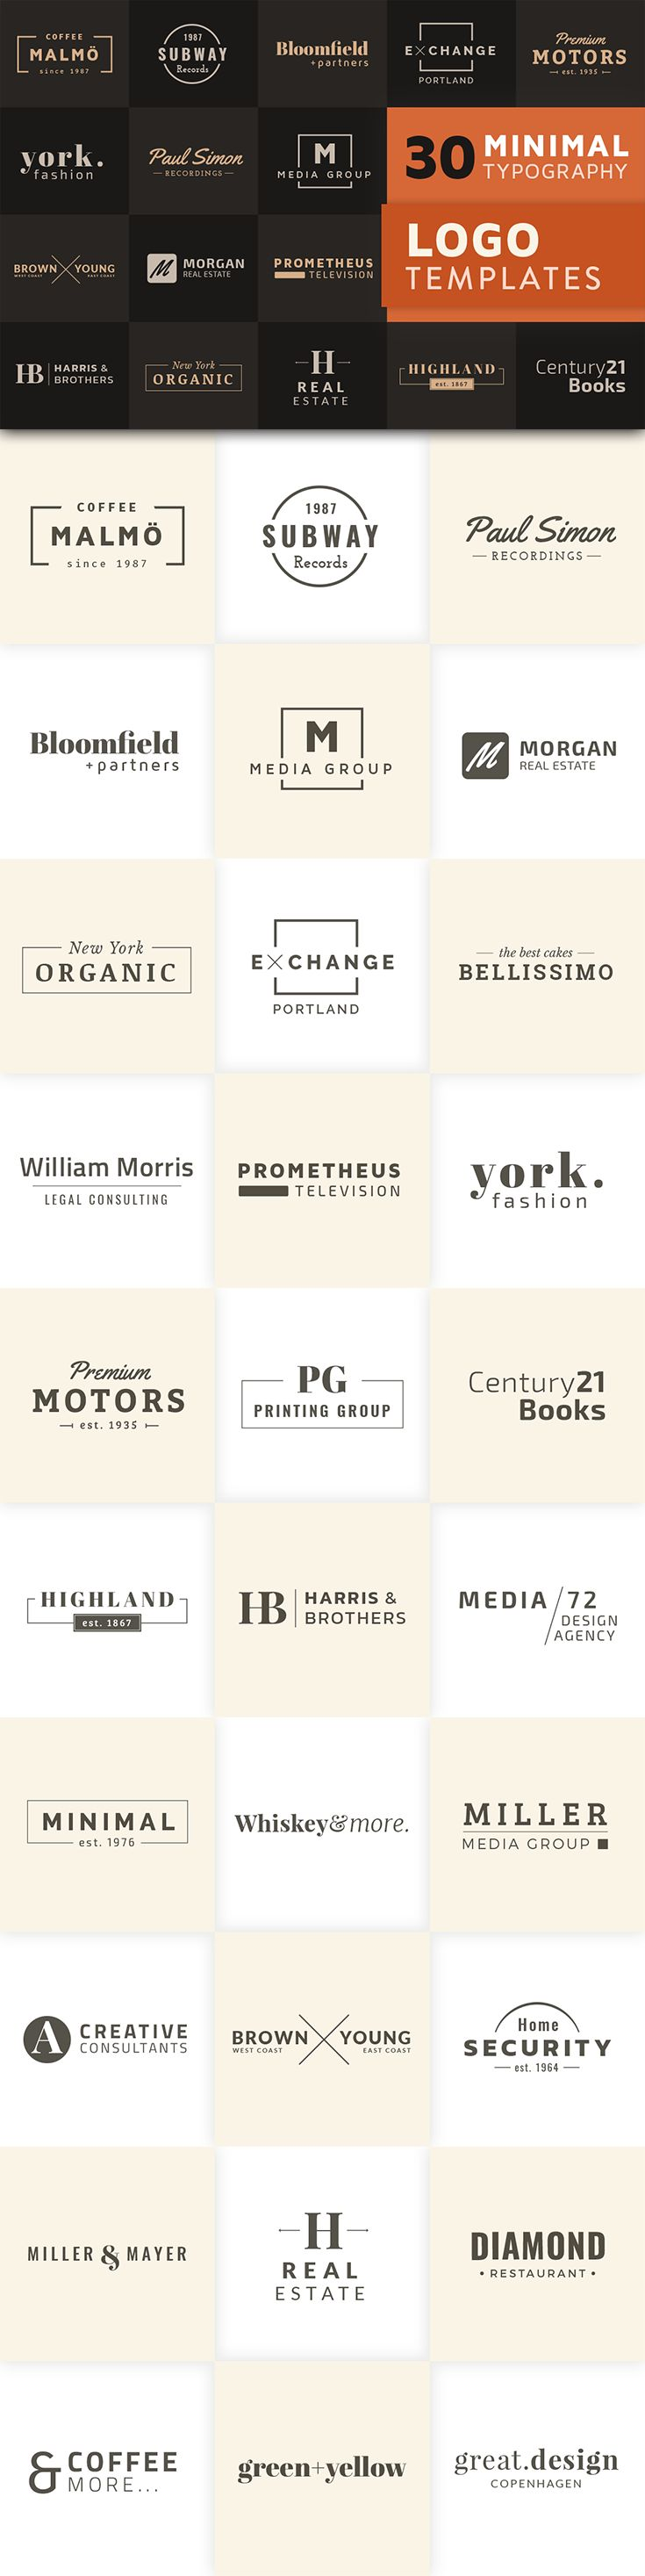 30 Minimal Typography Logo Templates for Adobe Illustrator which can be used for the branding of a large variety of business types: restaurants, design agencies, fashion, real estate, cafés, hotels or personal blogs.